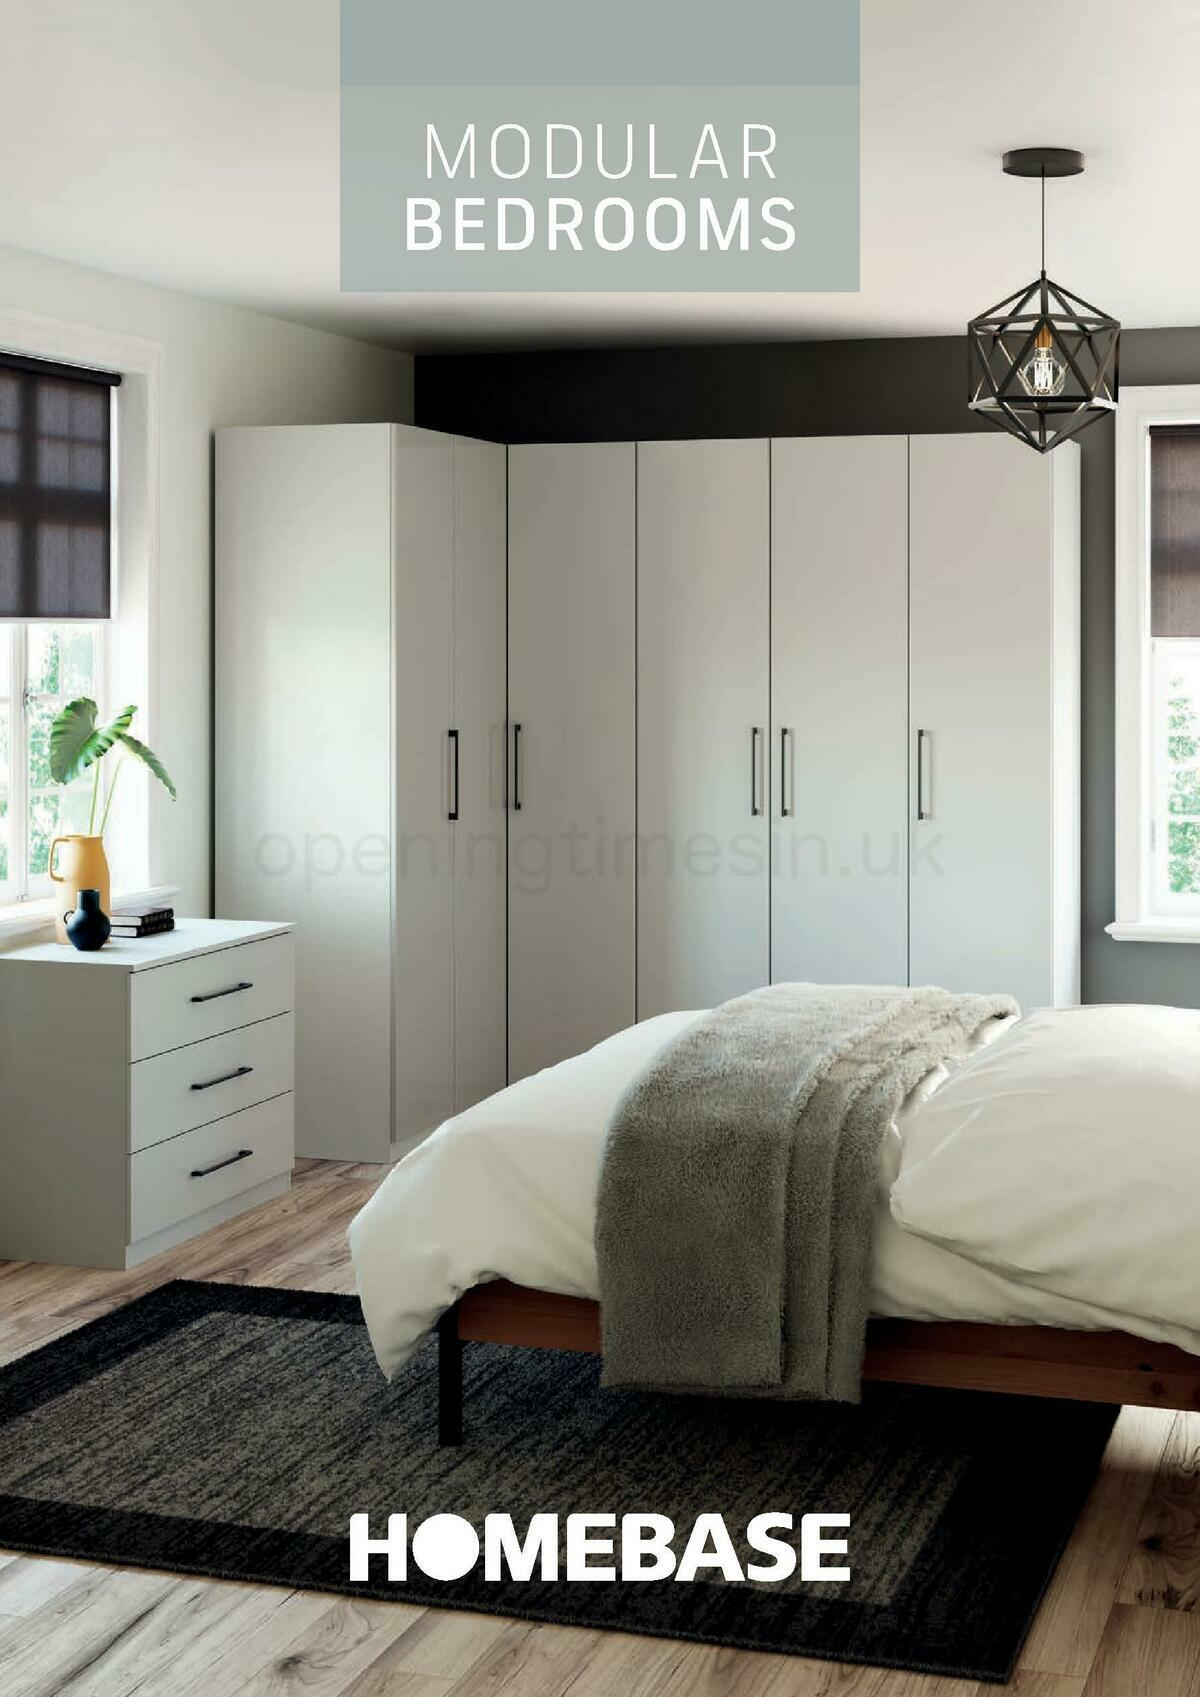 Homebase Modular Bedrooms Brochure Offers from August 1